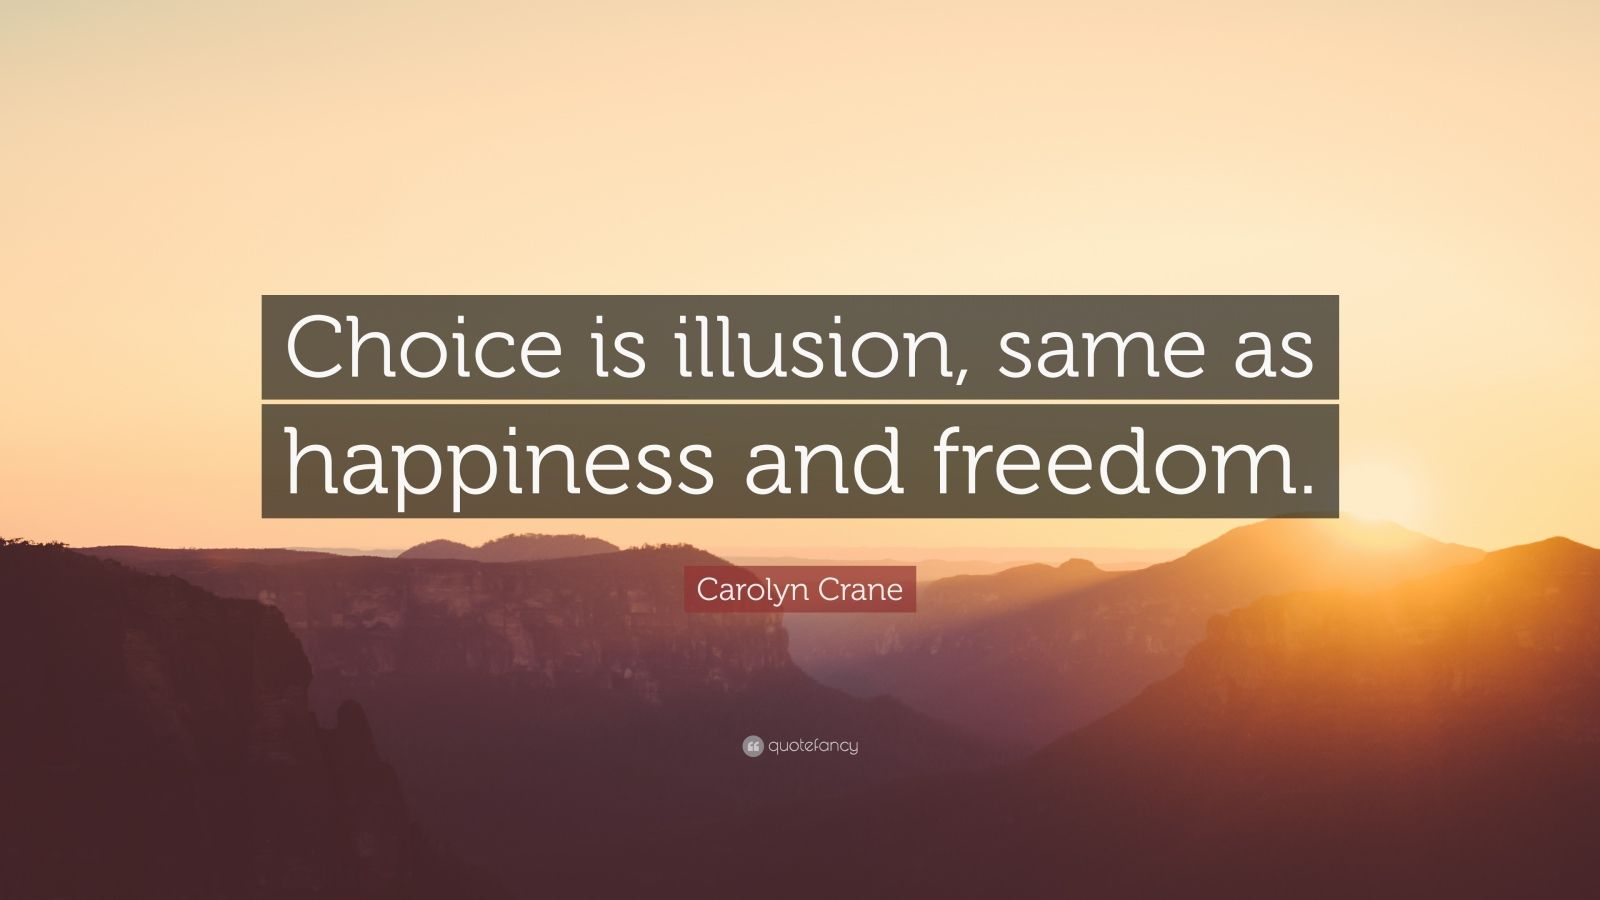 Carolyn Crane Quotes (6 Wallpapers)